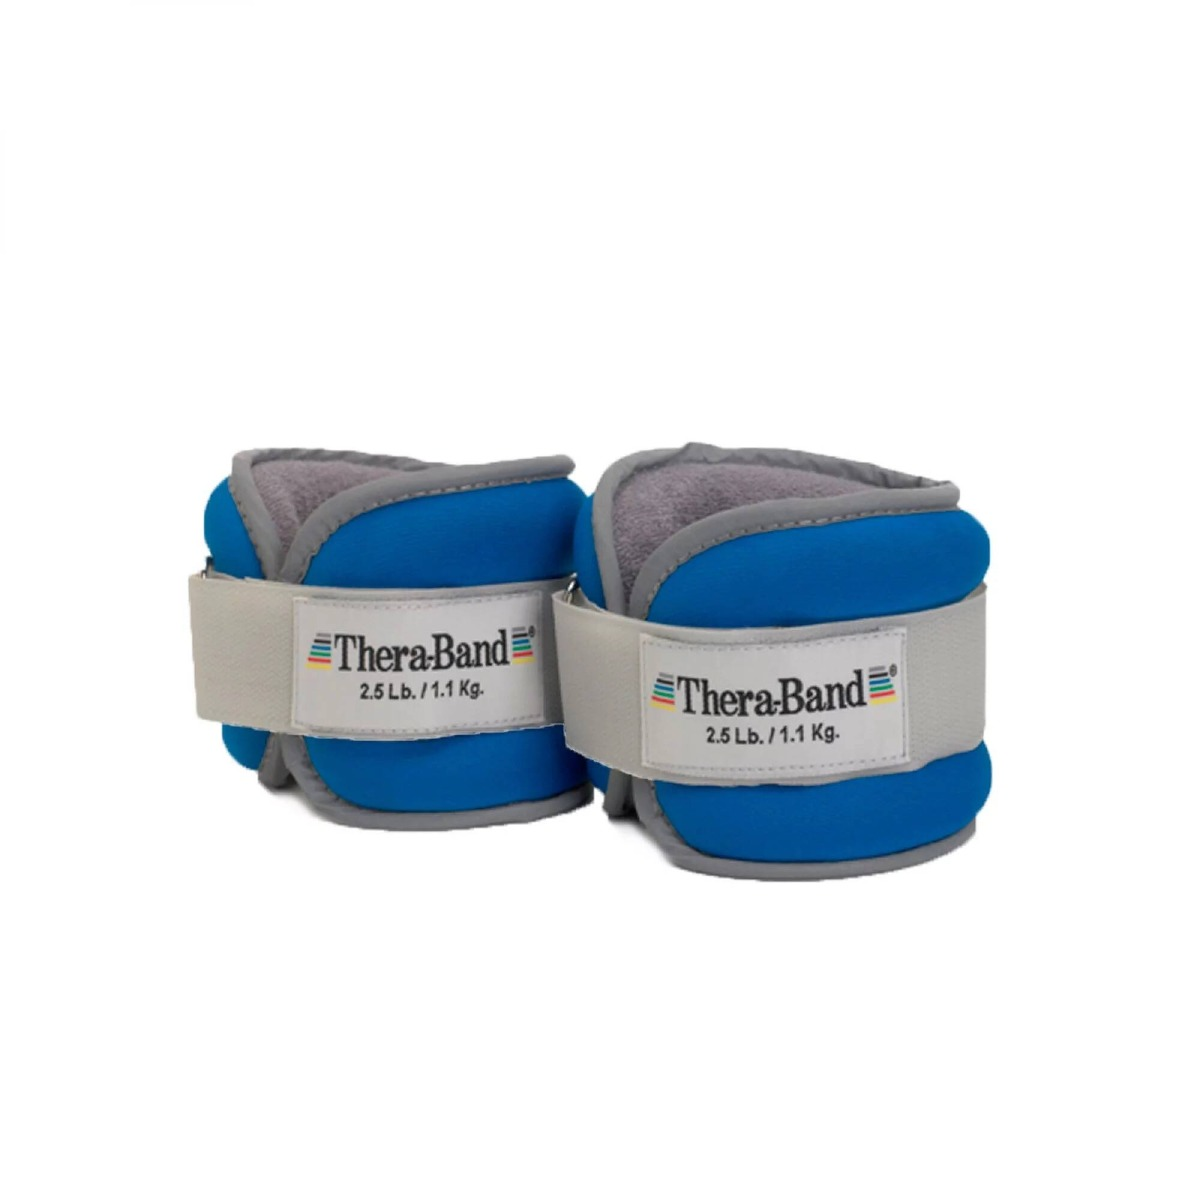 Theraband Ankle and Wrist Weights